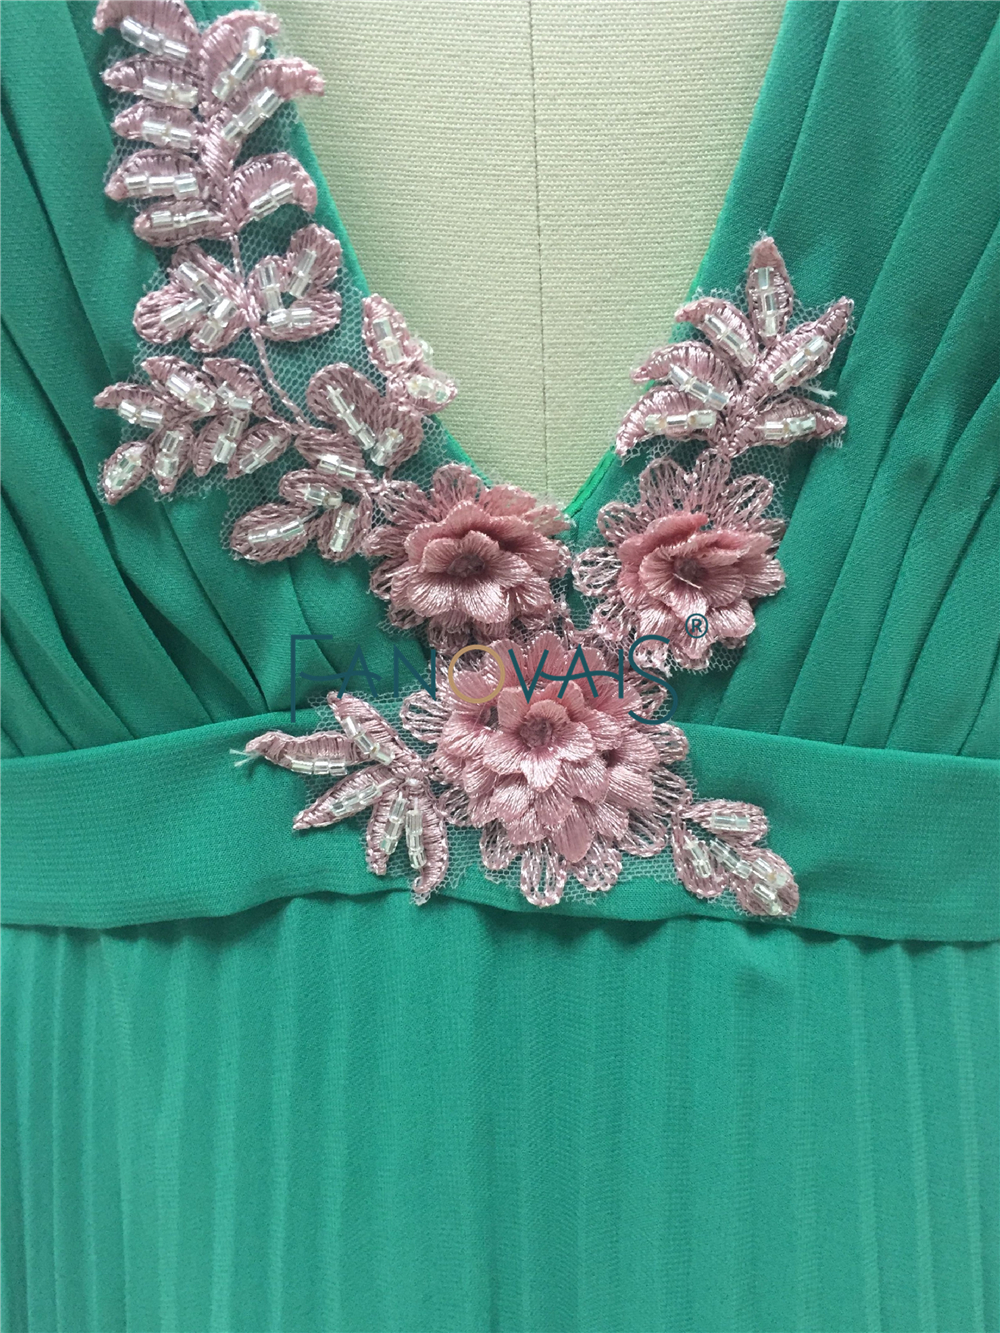 Sexy Lupita Nyongo Emerald Green Chiffon Celebrity Dress Cannes Festival 2015 Appliques Evening Gowns Evening Dresses CD13